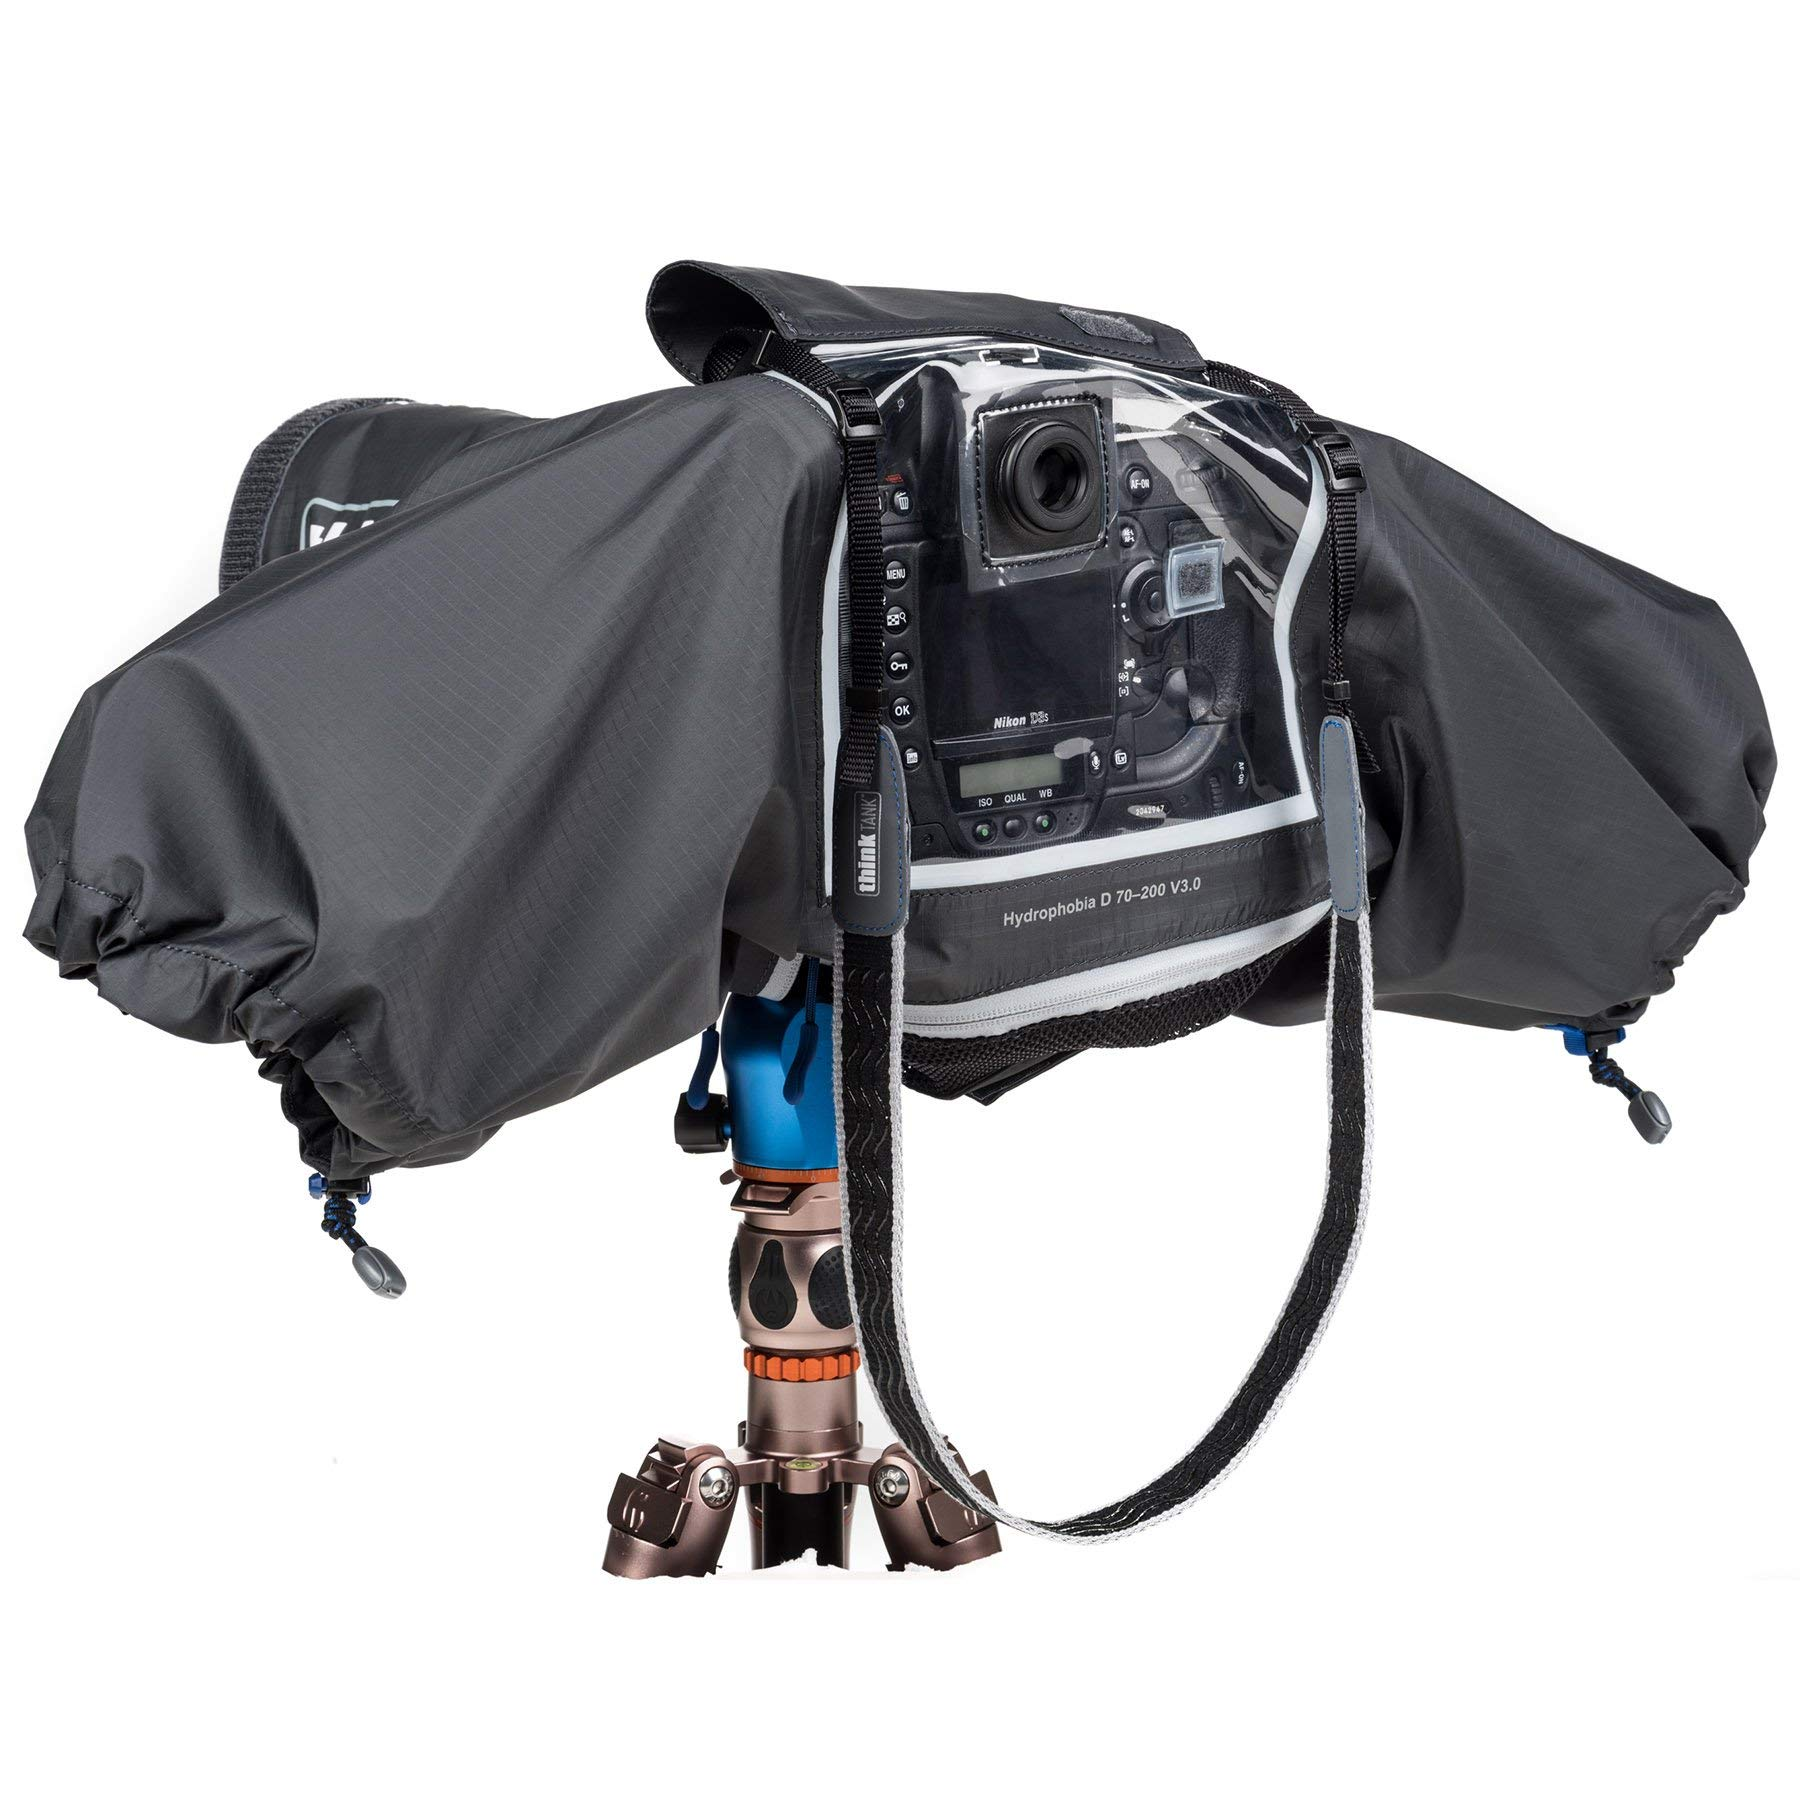 Think Tank Photo Hydrophobia D 70-200 V3 Camera Rain Cover for DSLR Camera with 70-200mm f/2.8 Lens by Think Tank (Image #2)